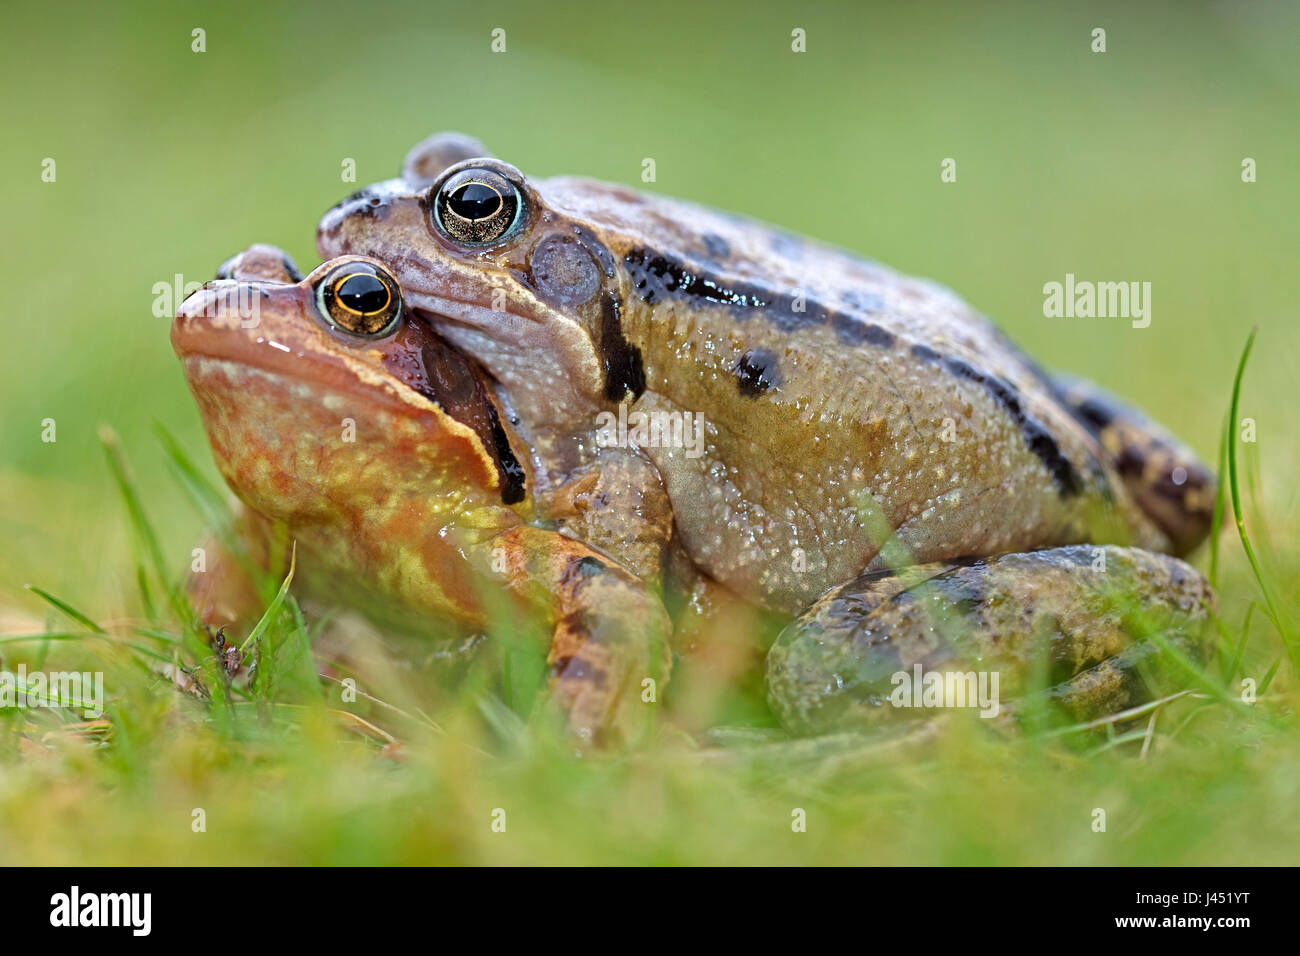 portrait of a pair of brown frogs - Stock Image